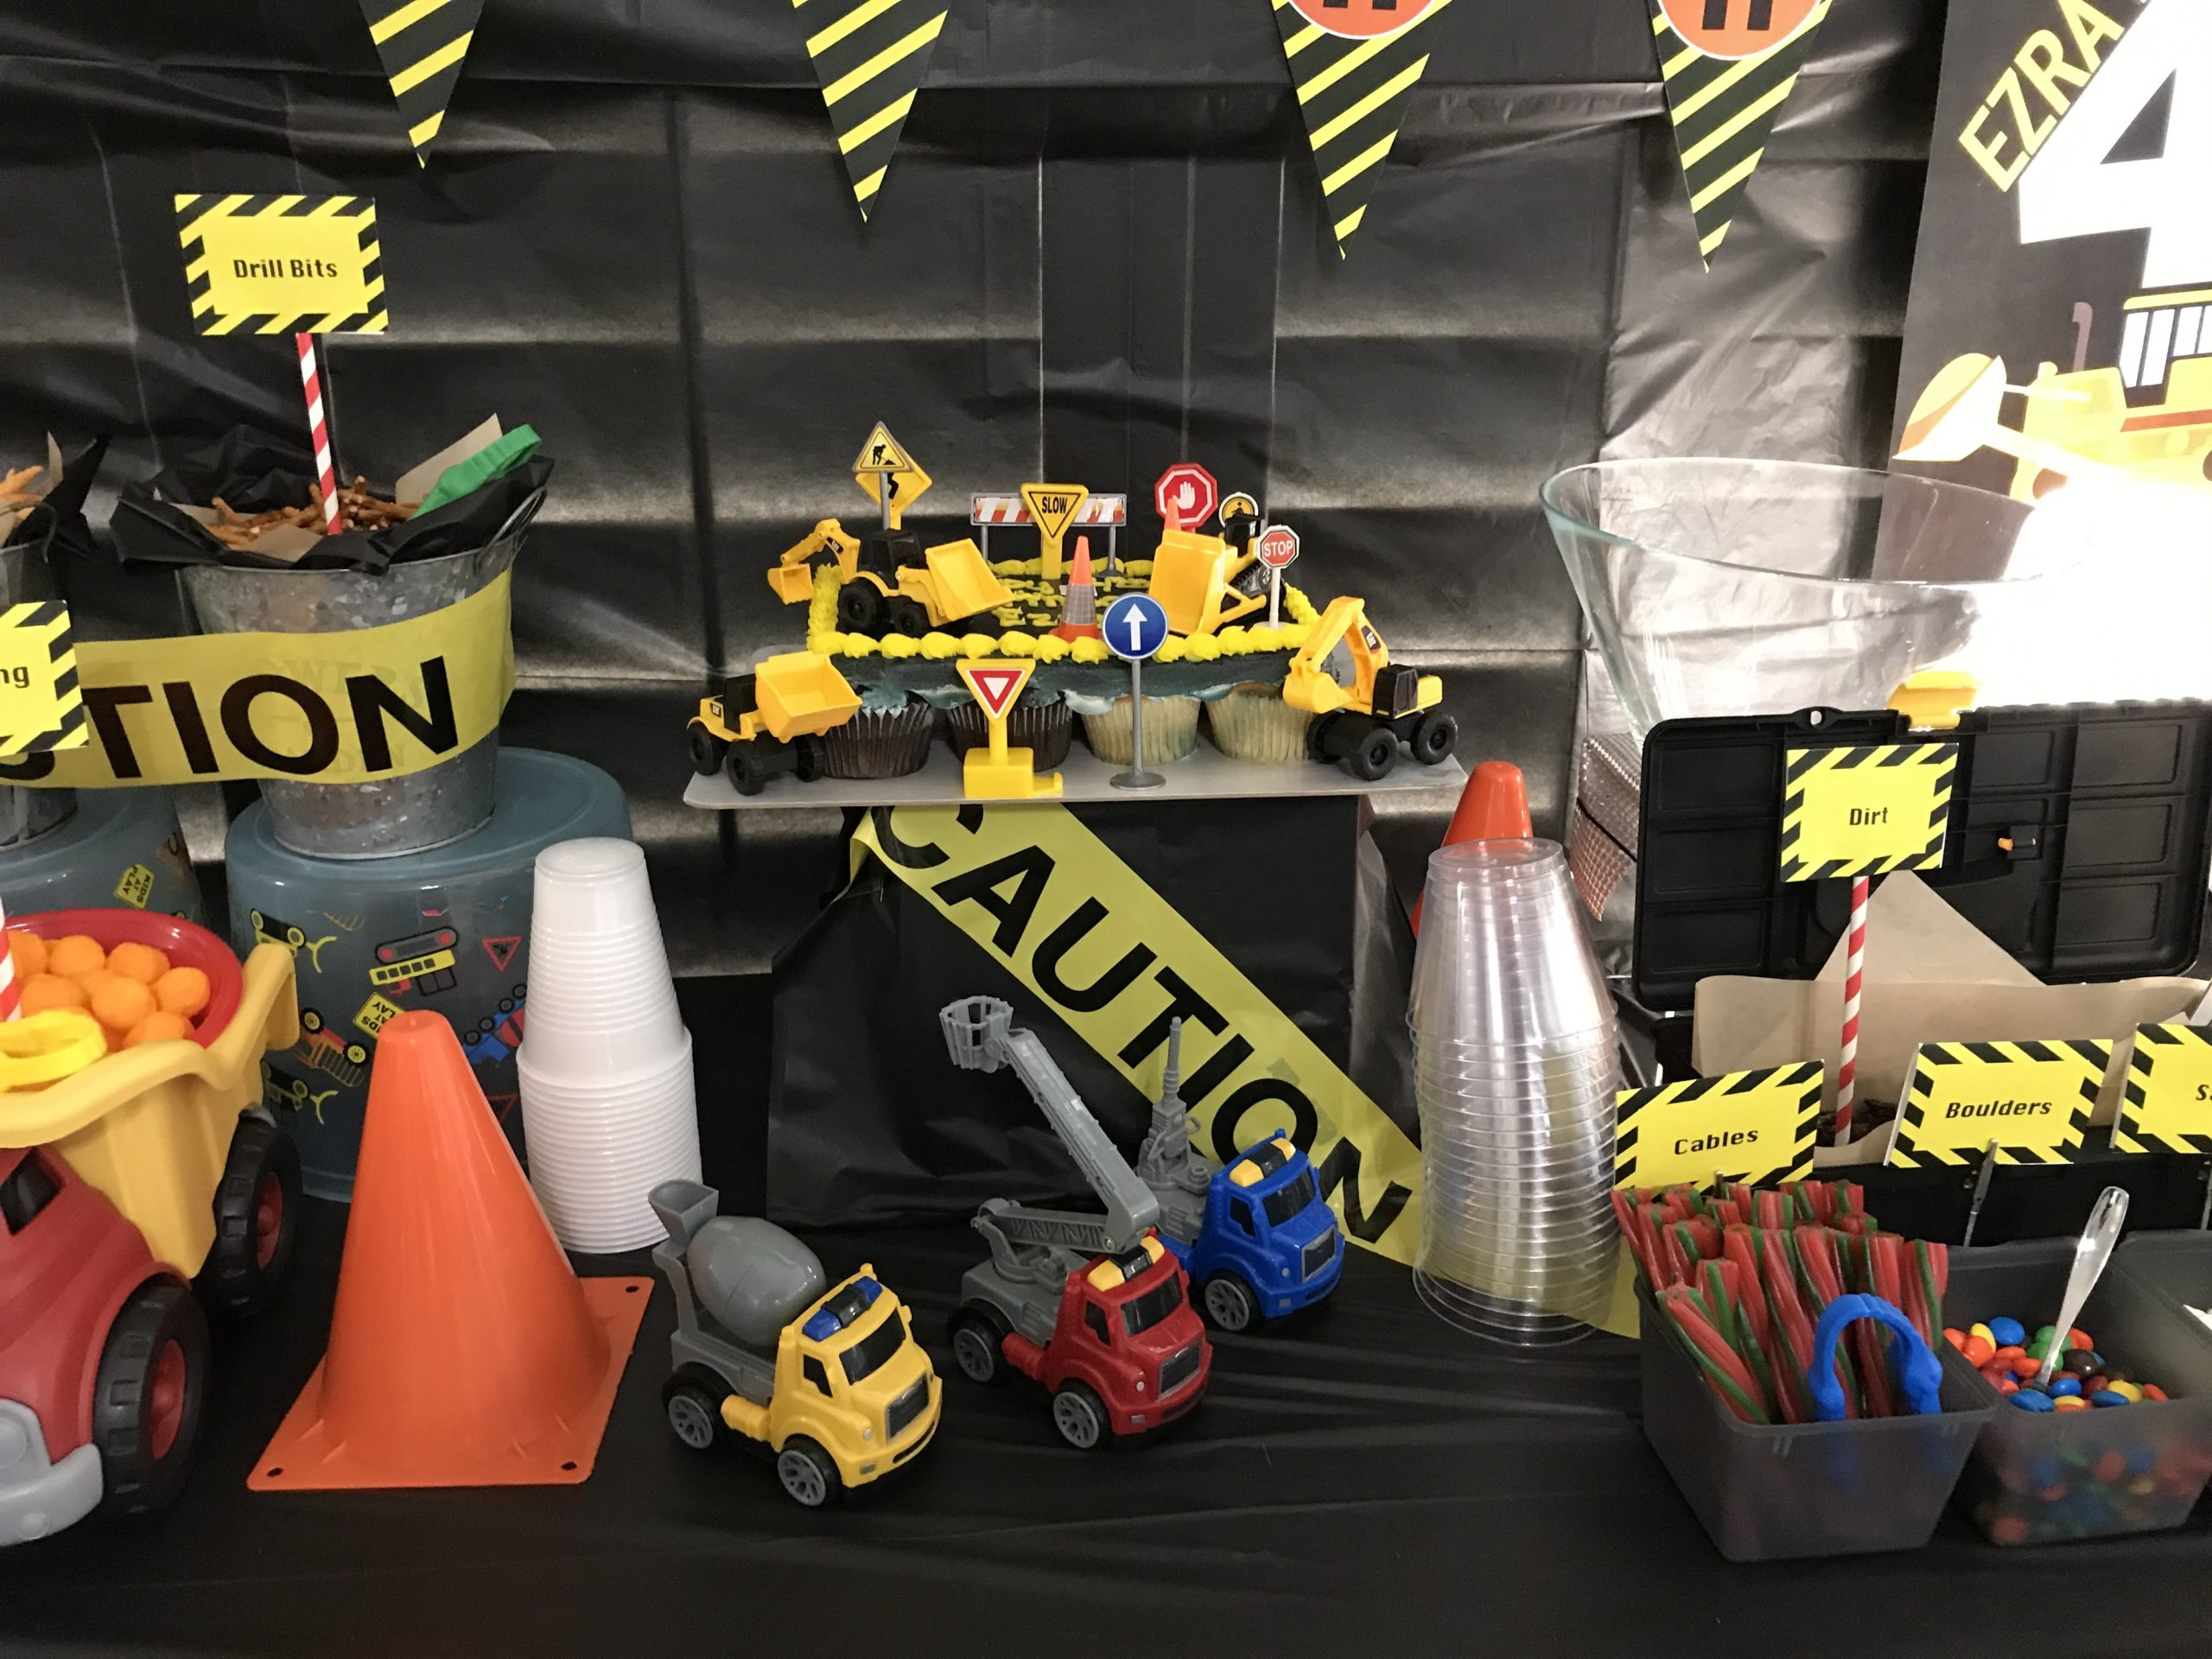 Construction Party theme